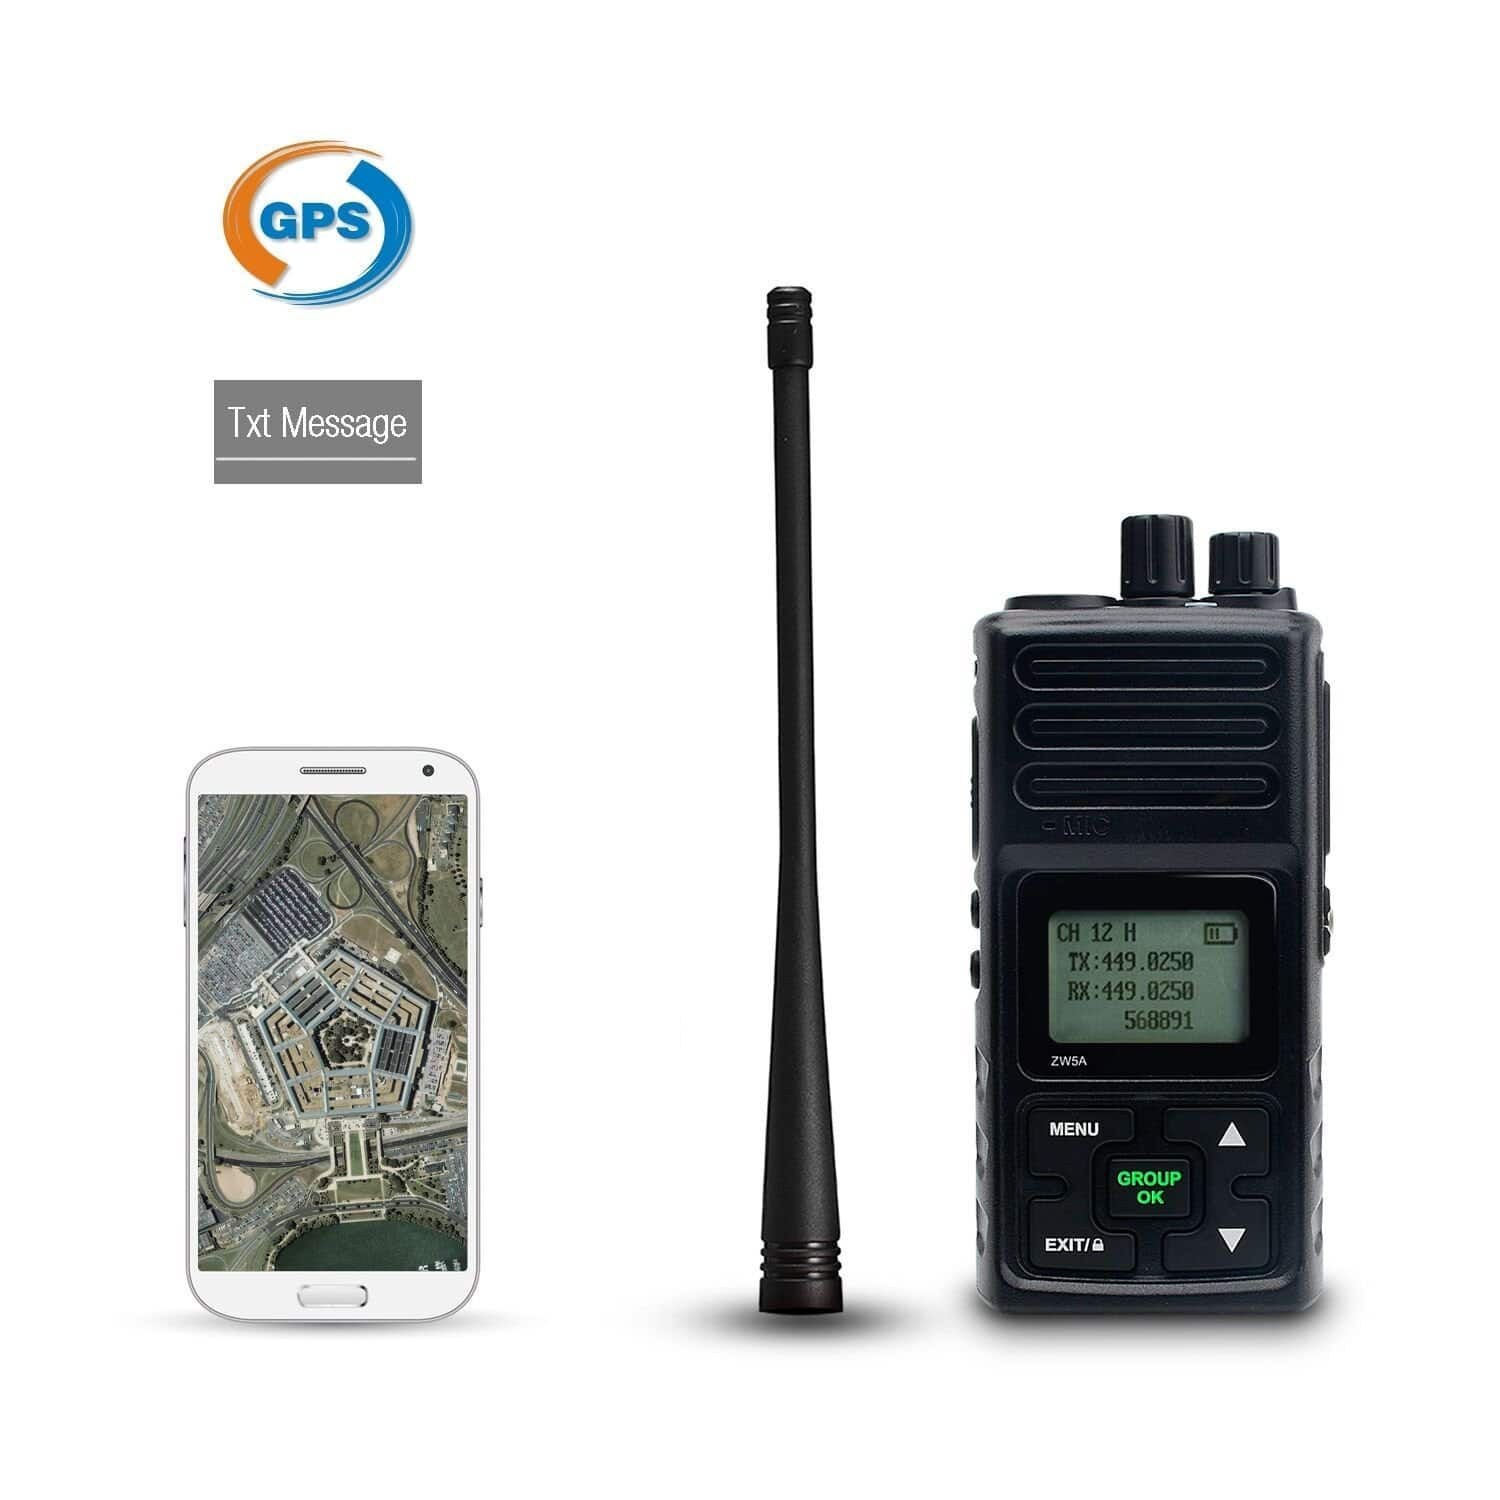 5W Smart Two Way Radio Walkie Talkies Text & GPS on Your Phone No Service Required IP65 $48.3 AC FS w/Amazon Prime